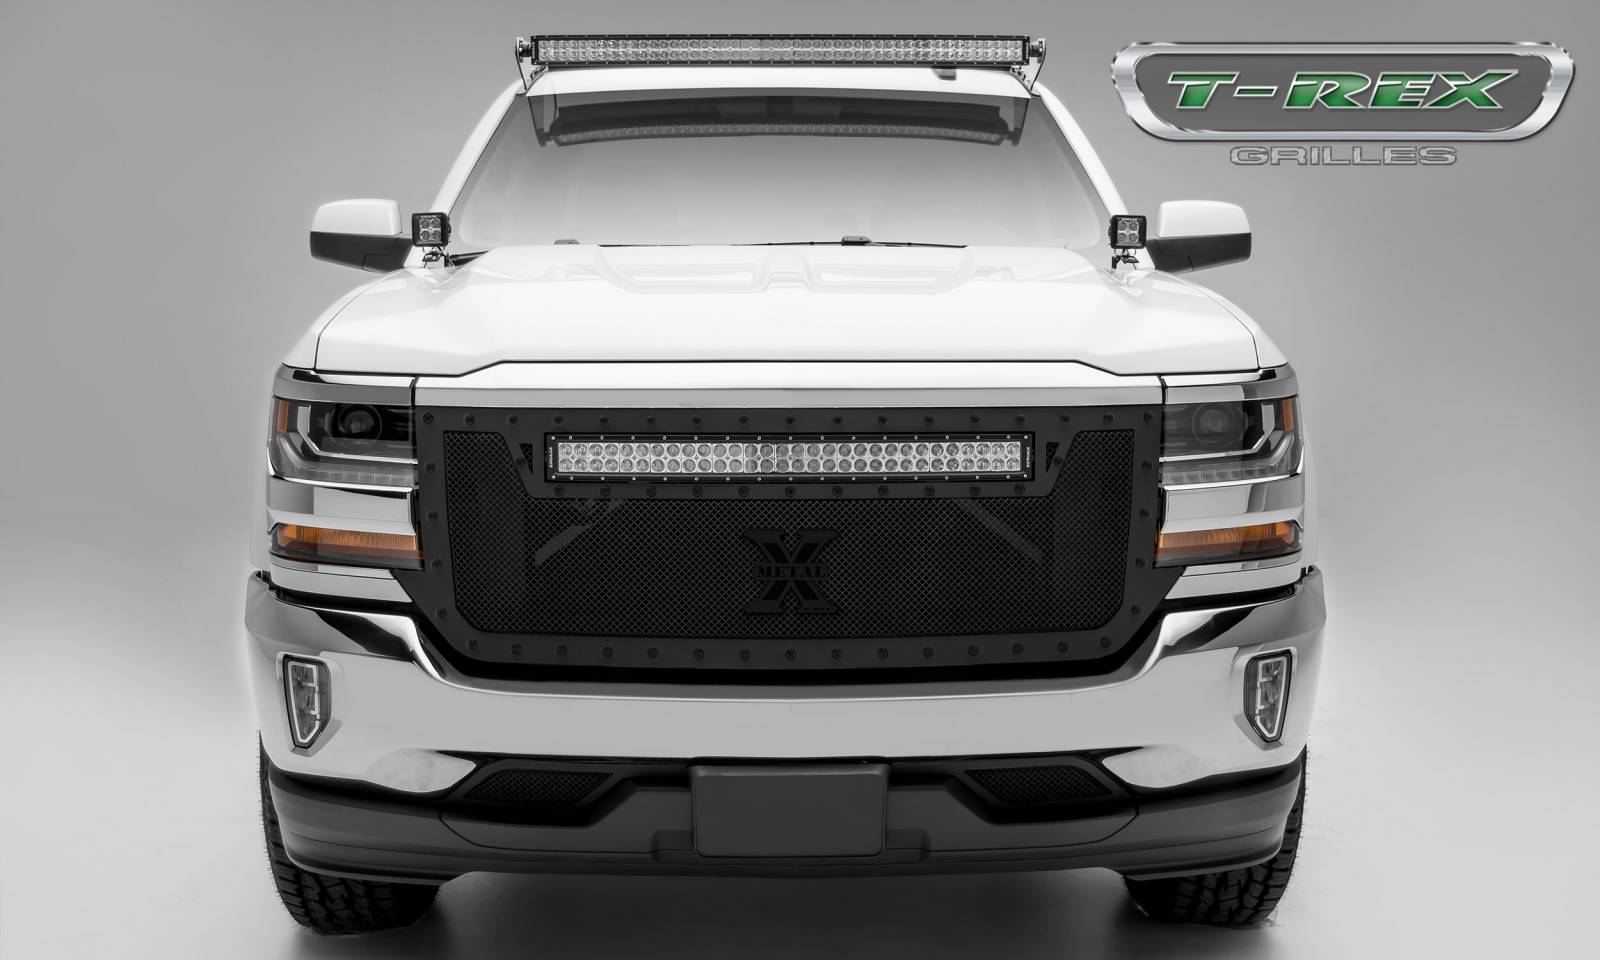 Chevrolet silverado stealth torch series 1 30 led light bar top chevrolet silverado stealth torch series 1 30 led light bar top formed mesh main grille replacement powder coated black pt 6311281 br mozeypictures Image collections